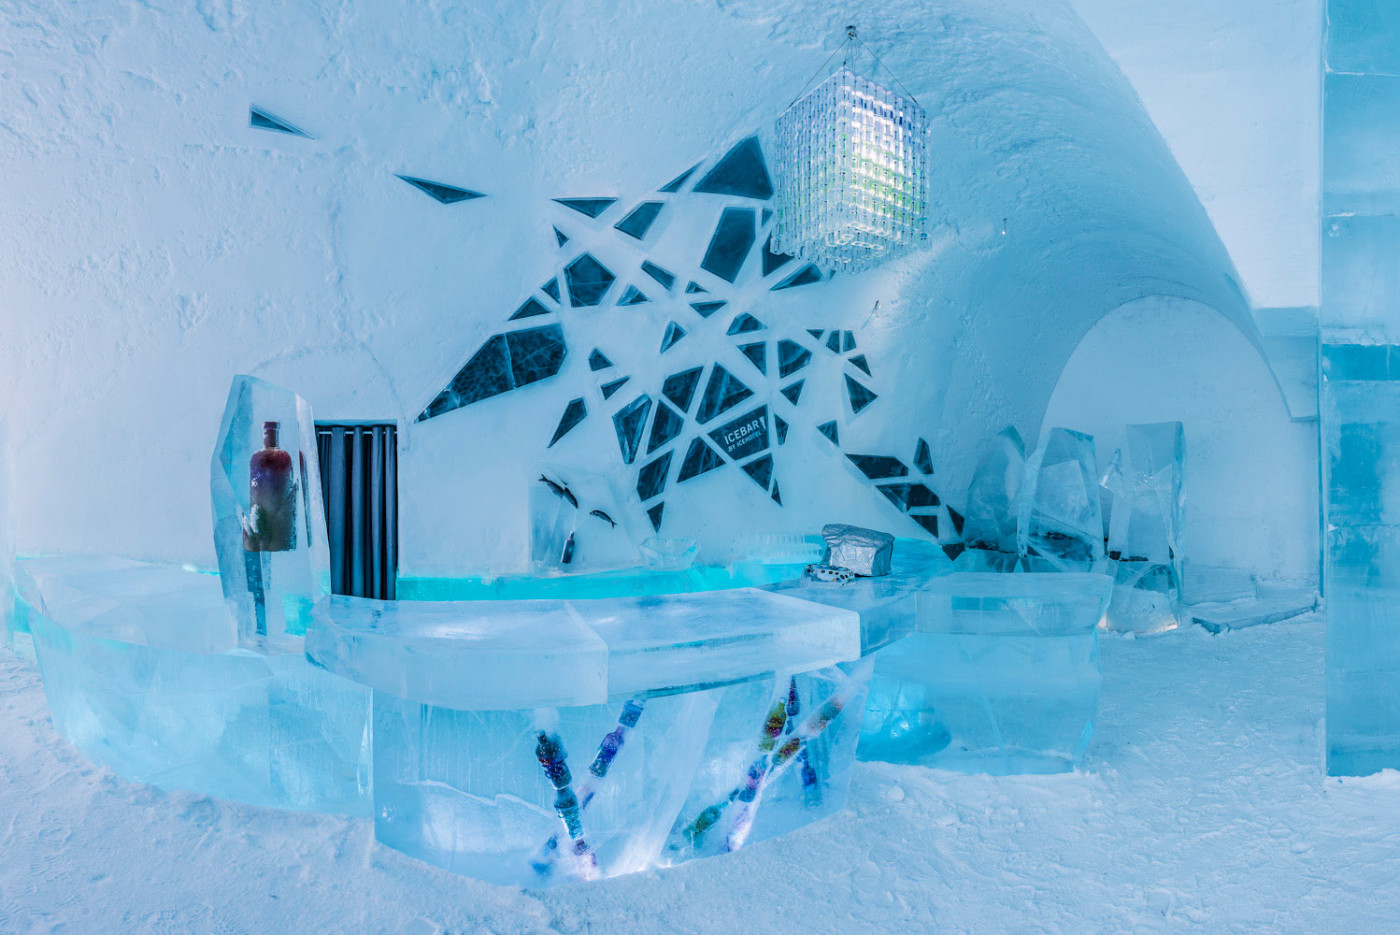 sweden 39 s icehotel is now open 365 days a year kids news article page 8. Black Bedroom Furniture Sets. Home Design Ideas